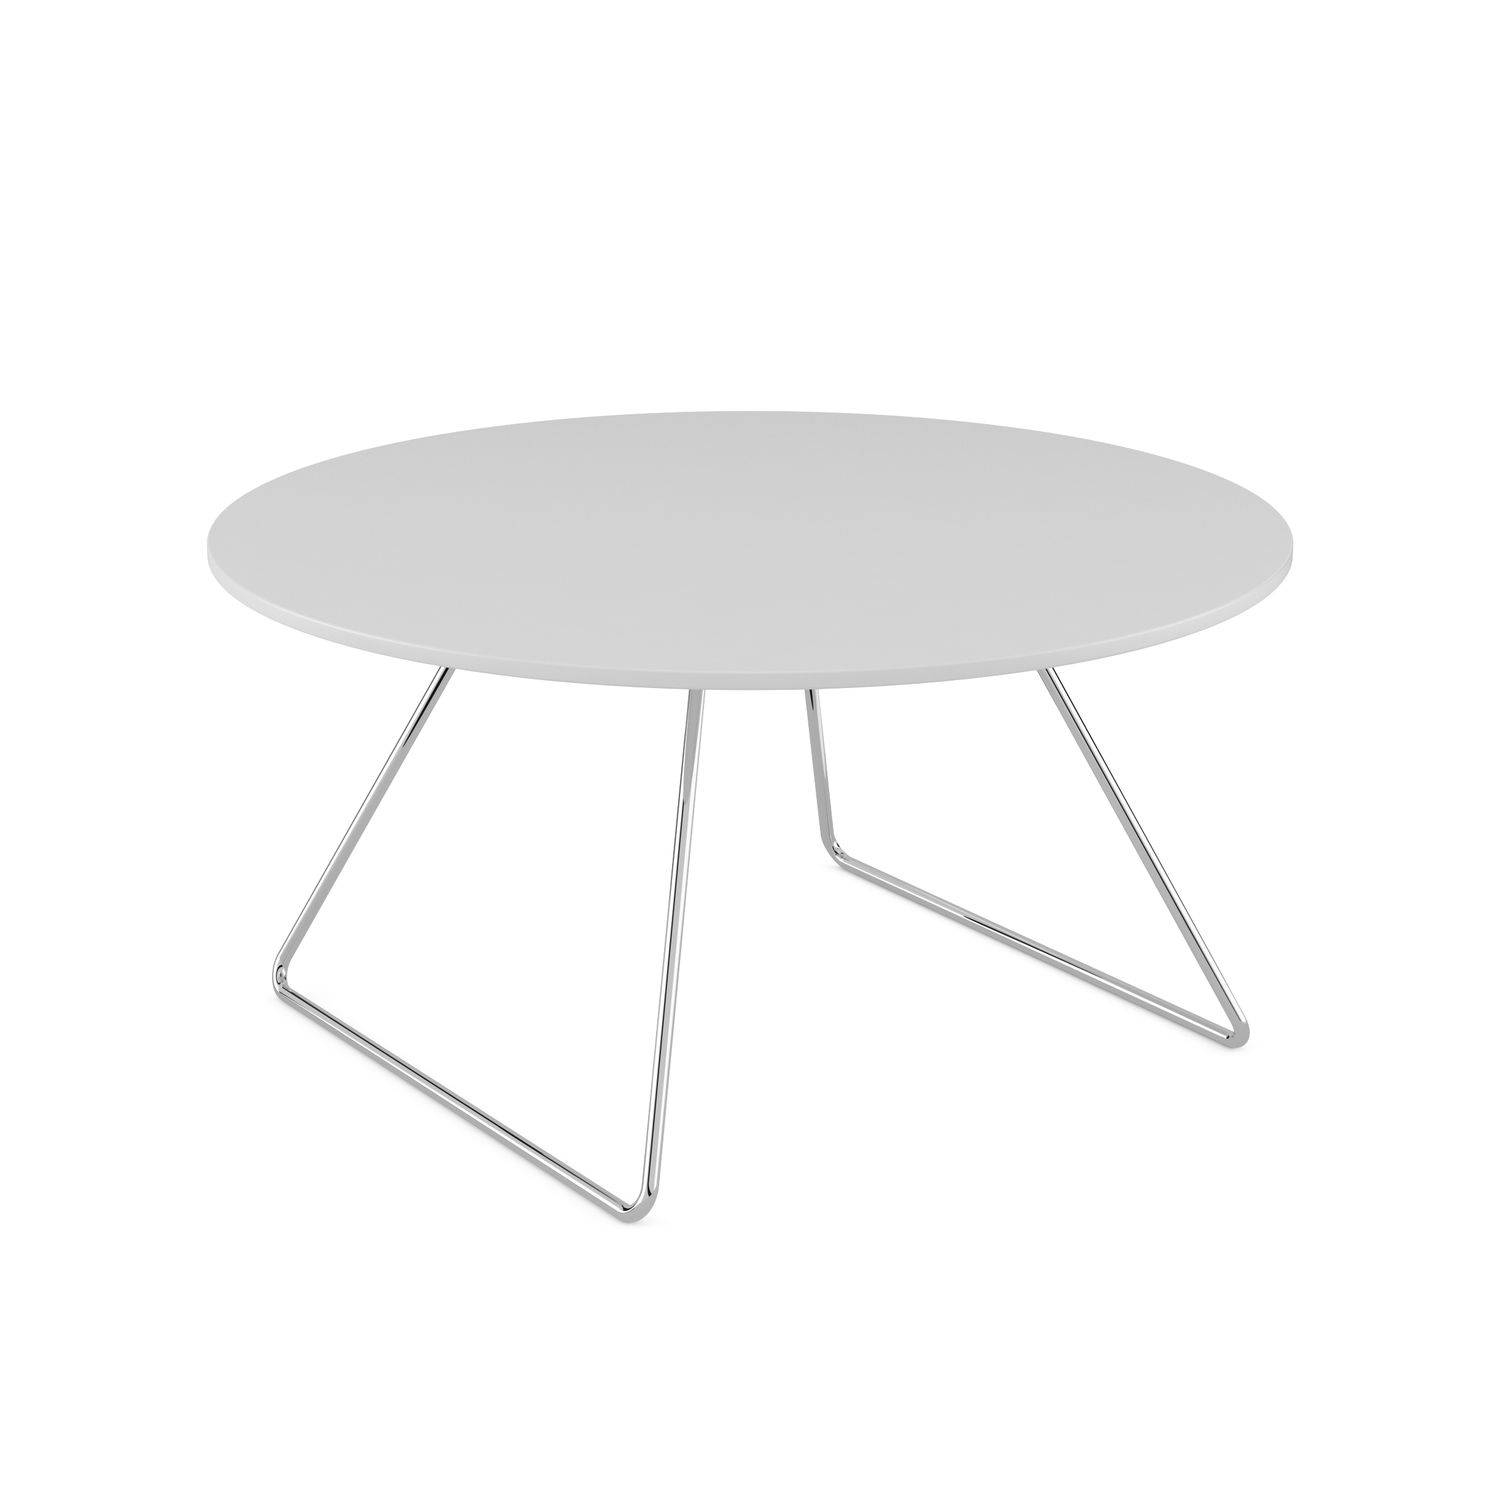 Contemporary Coffee Table / Beech / Round - Line - Komac pertaining to Round Beech Coffee Tables (Image 10 of 30)